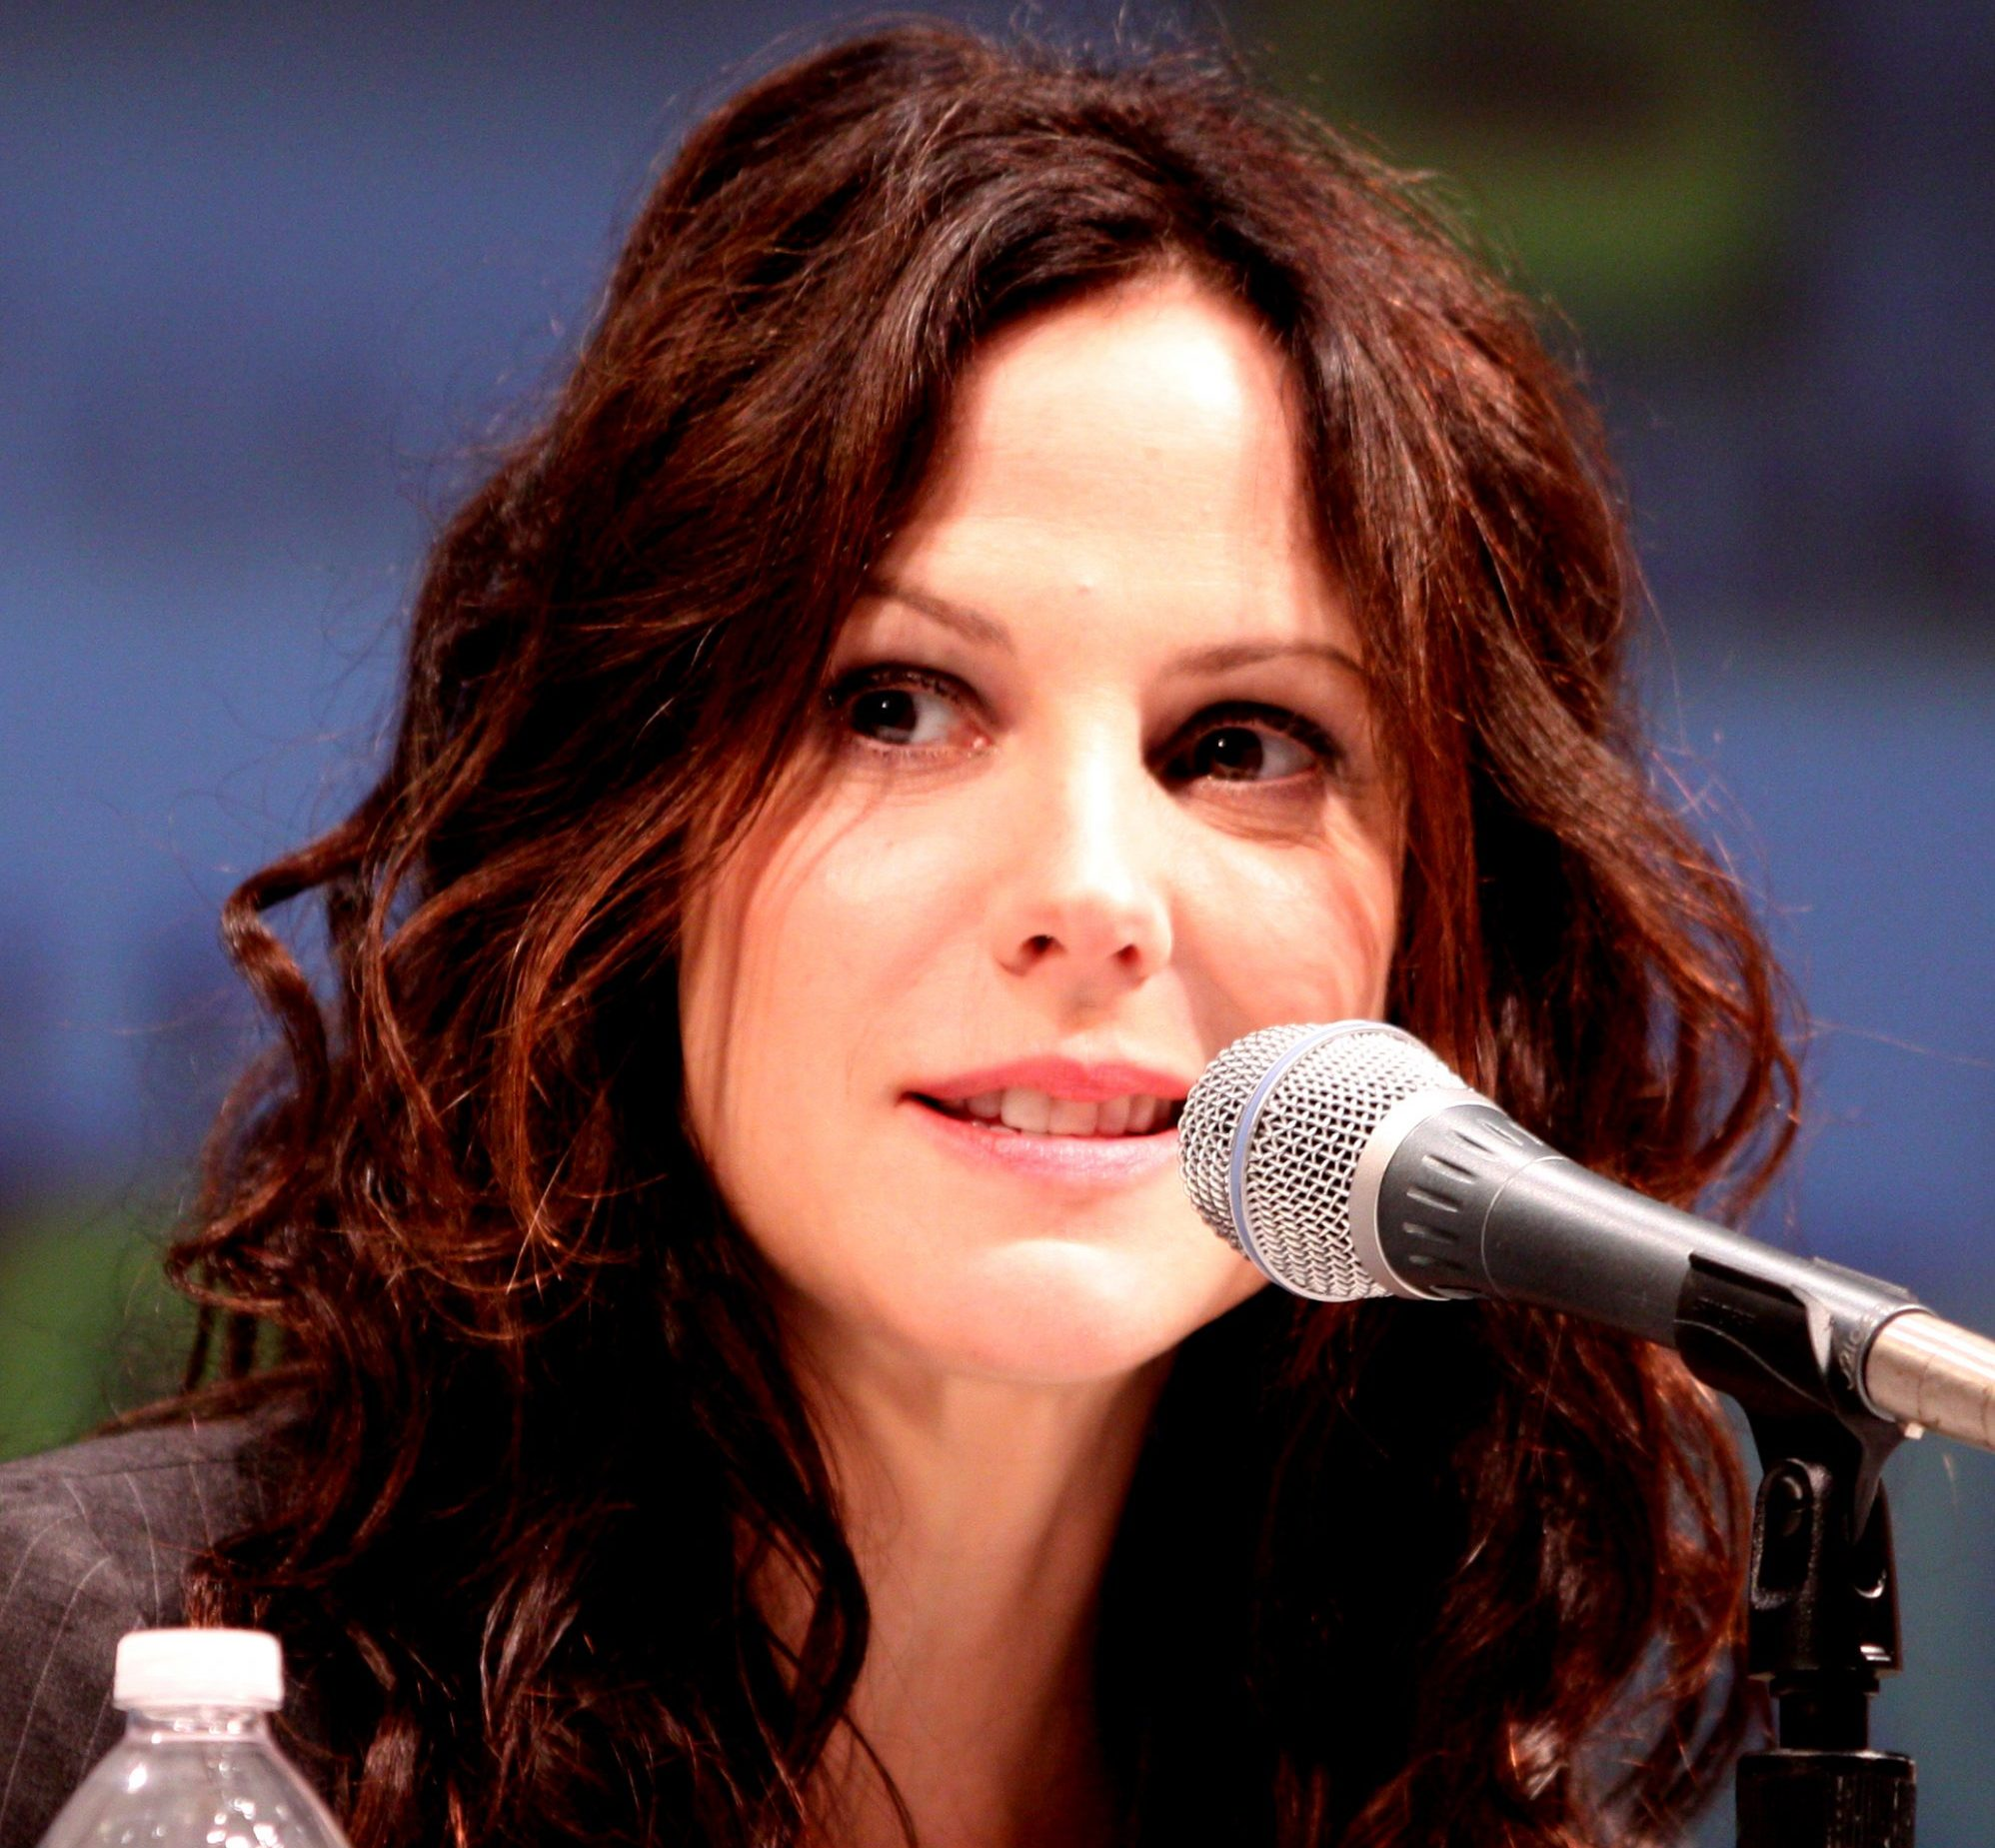 Mary Louise Parker Comic Con 2010 scaled e1616515868221 20 Things You Might Not Have Realised About The 1991 Film Fried Green Tomatoes